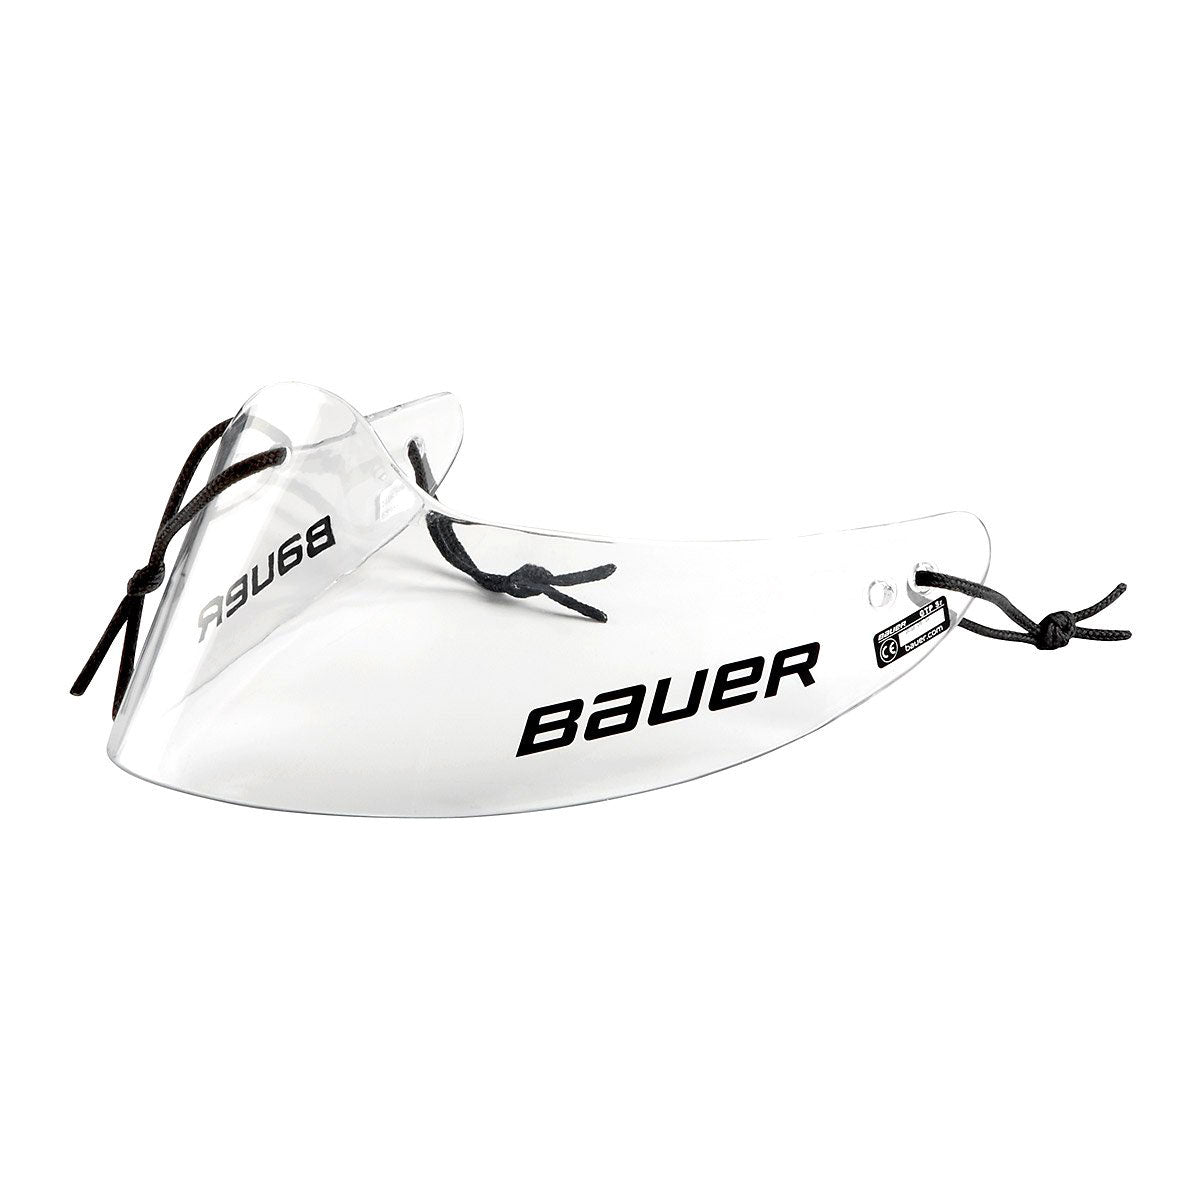 Bauer Senior Lexan Goalie Neck Protection